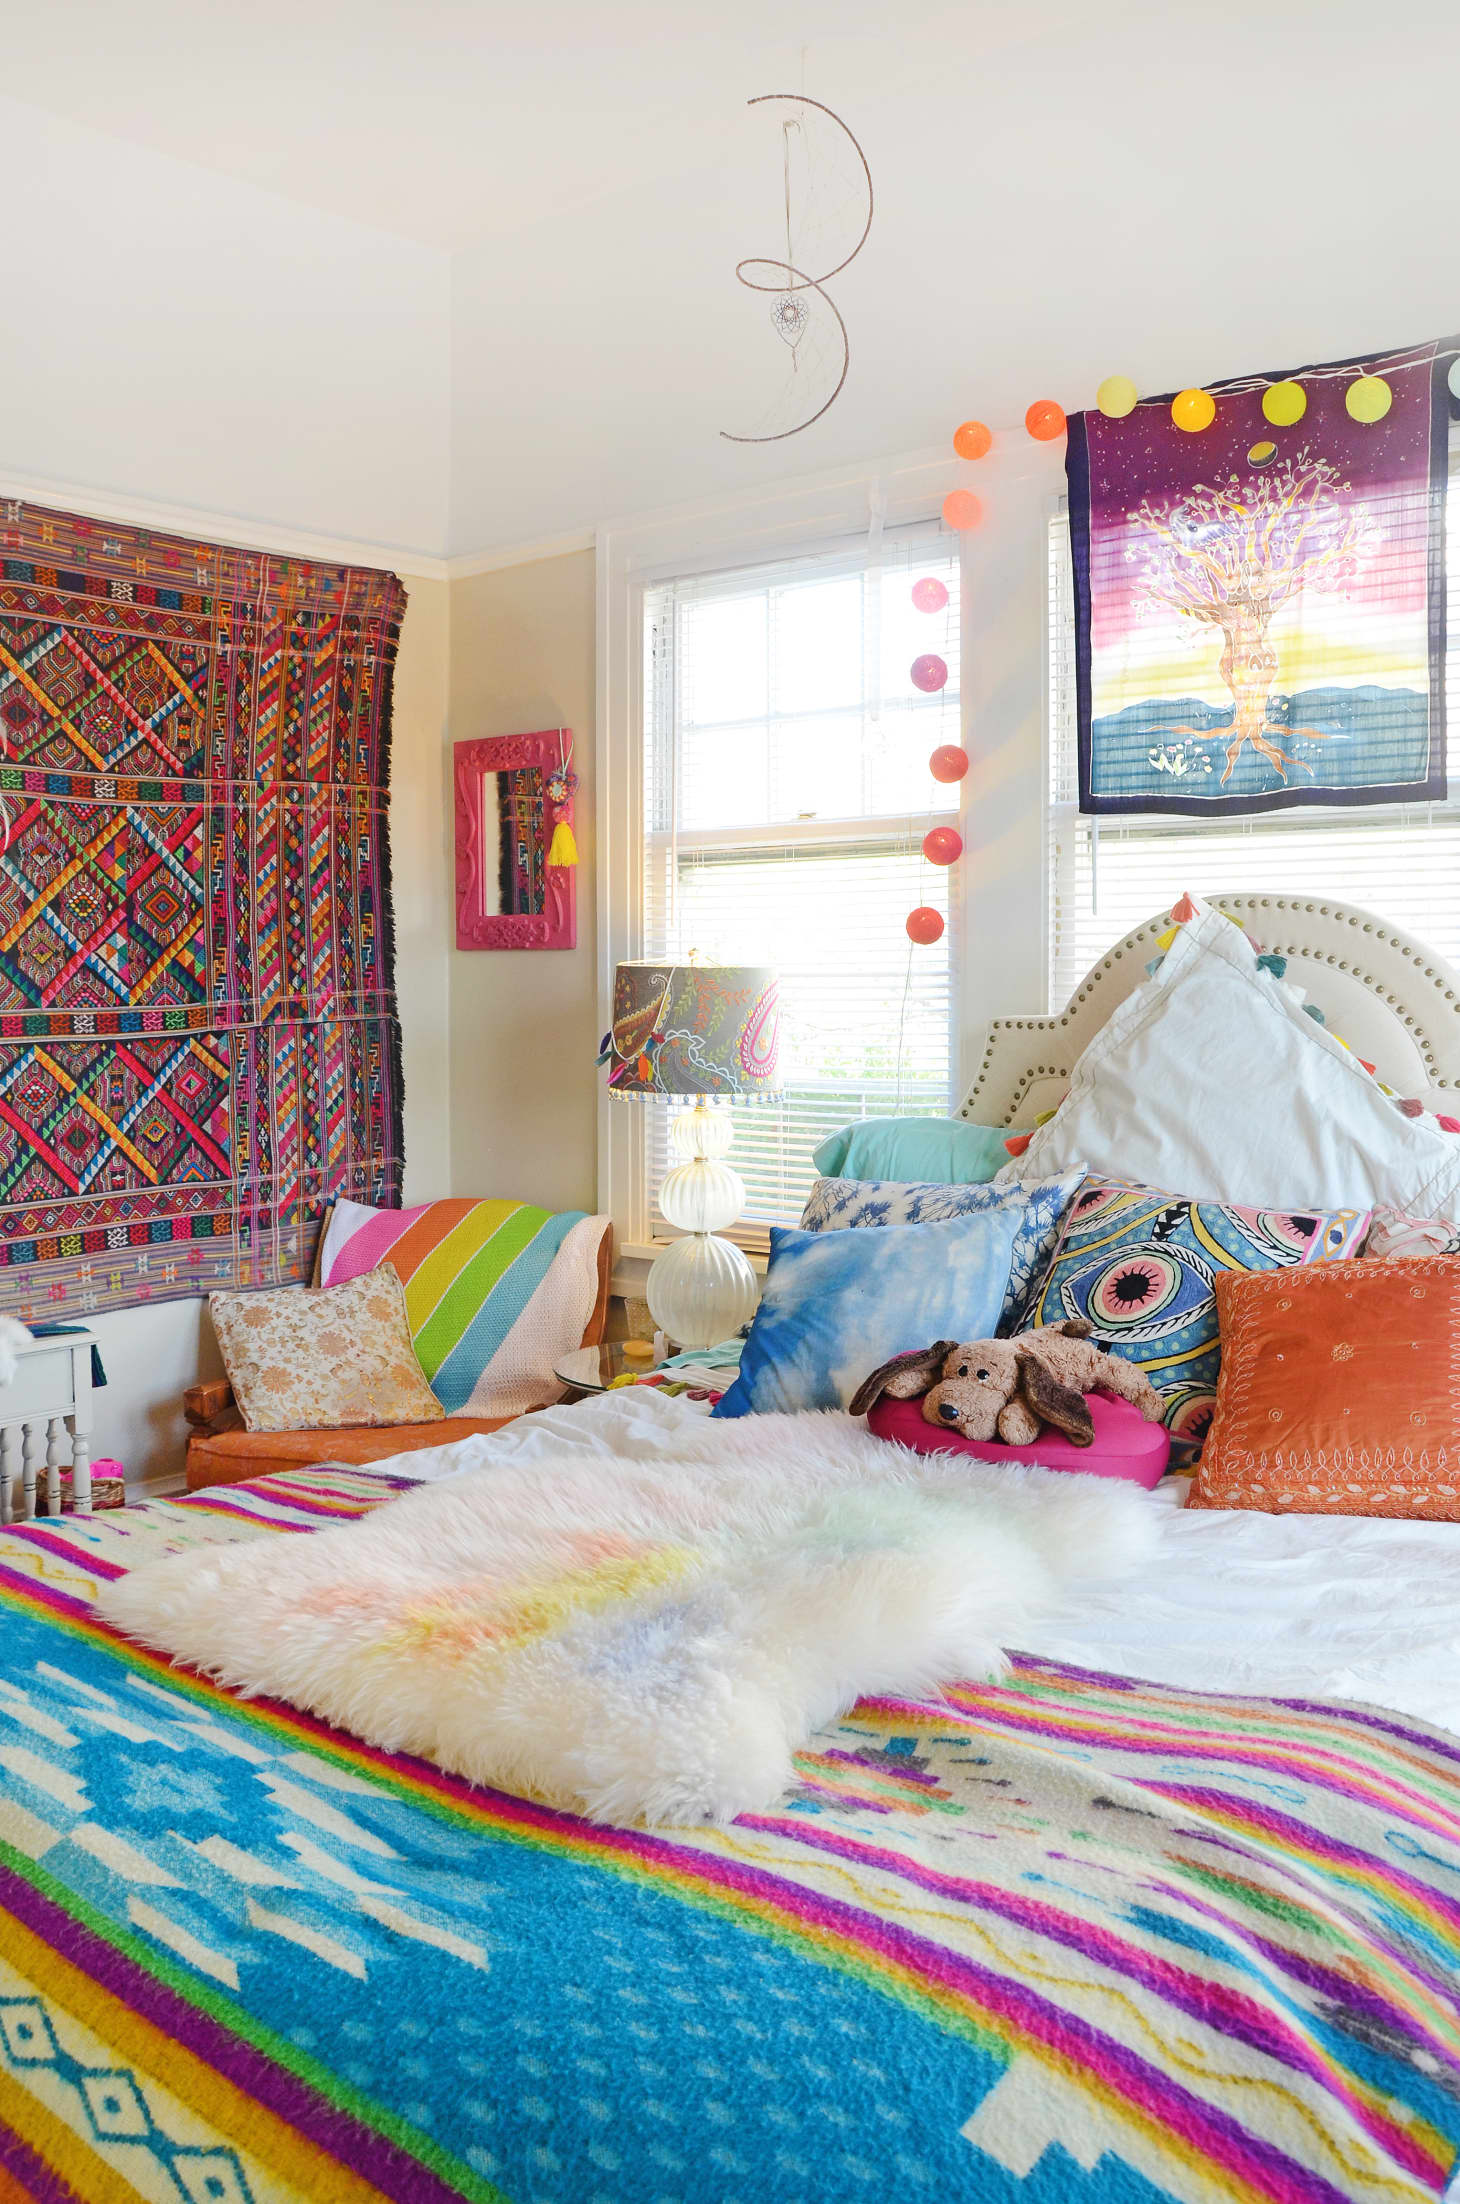 exciting bedroom style bohemian bedding | Bohemian Design Trends - Bedroom Decor Ideas | Apartment ...